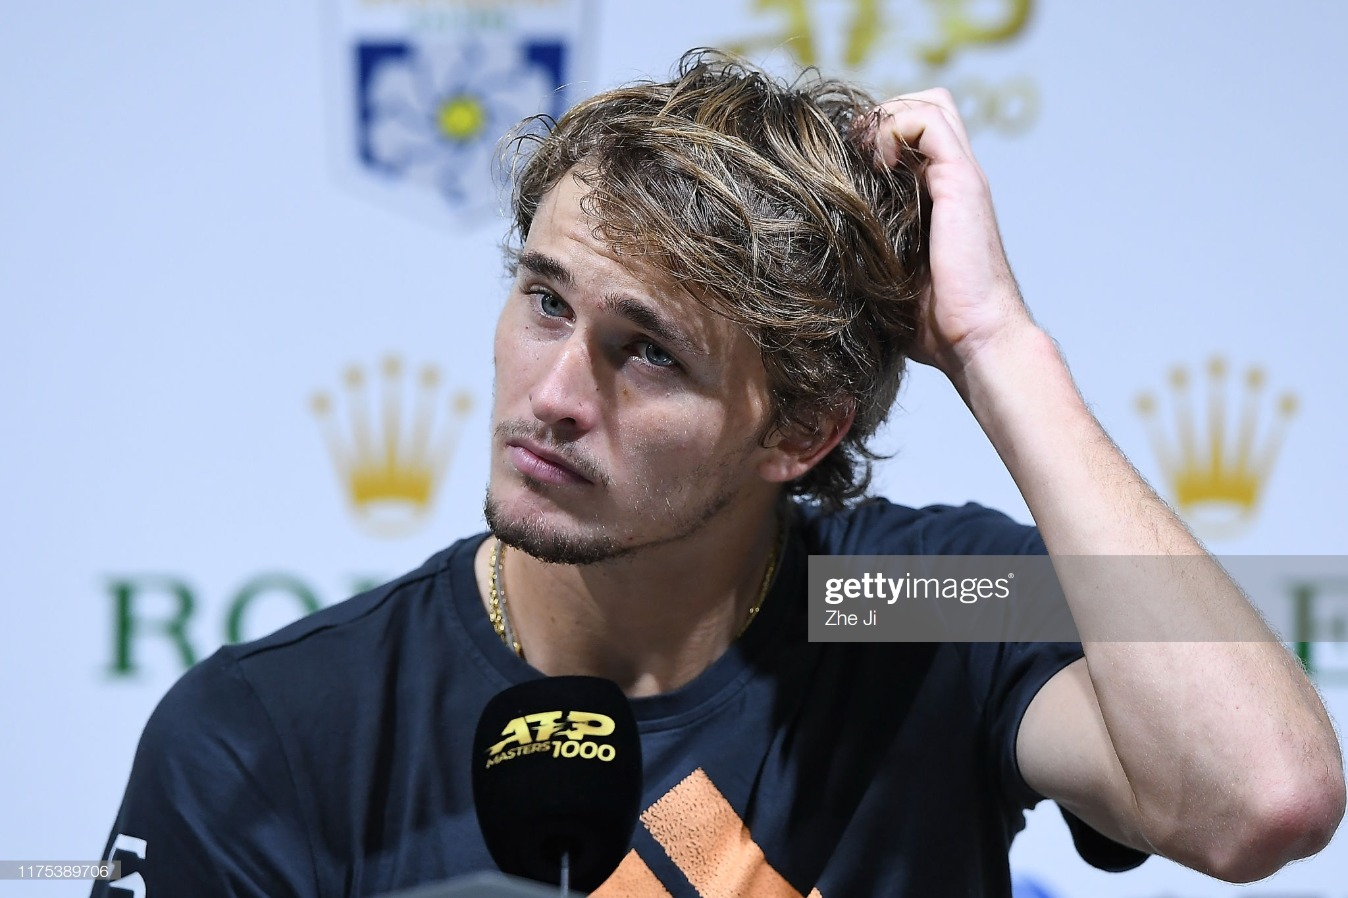 2019 Rolex Shanghai Masters - Day 8 : News Photo